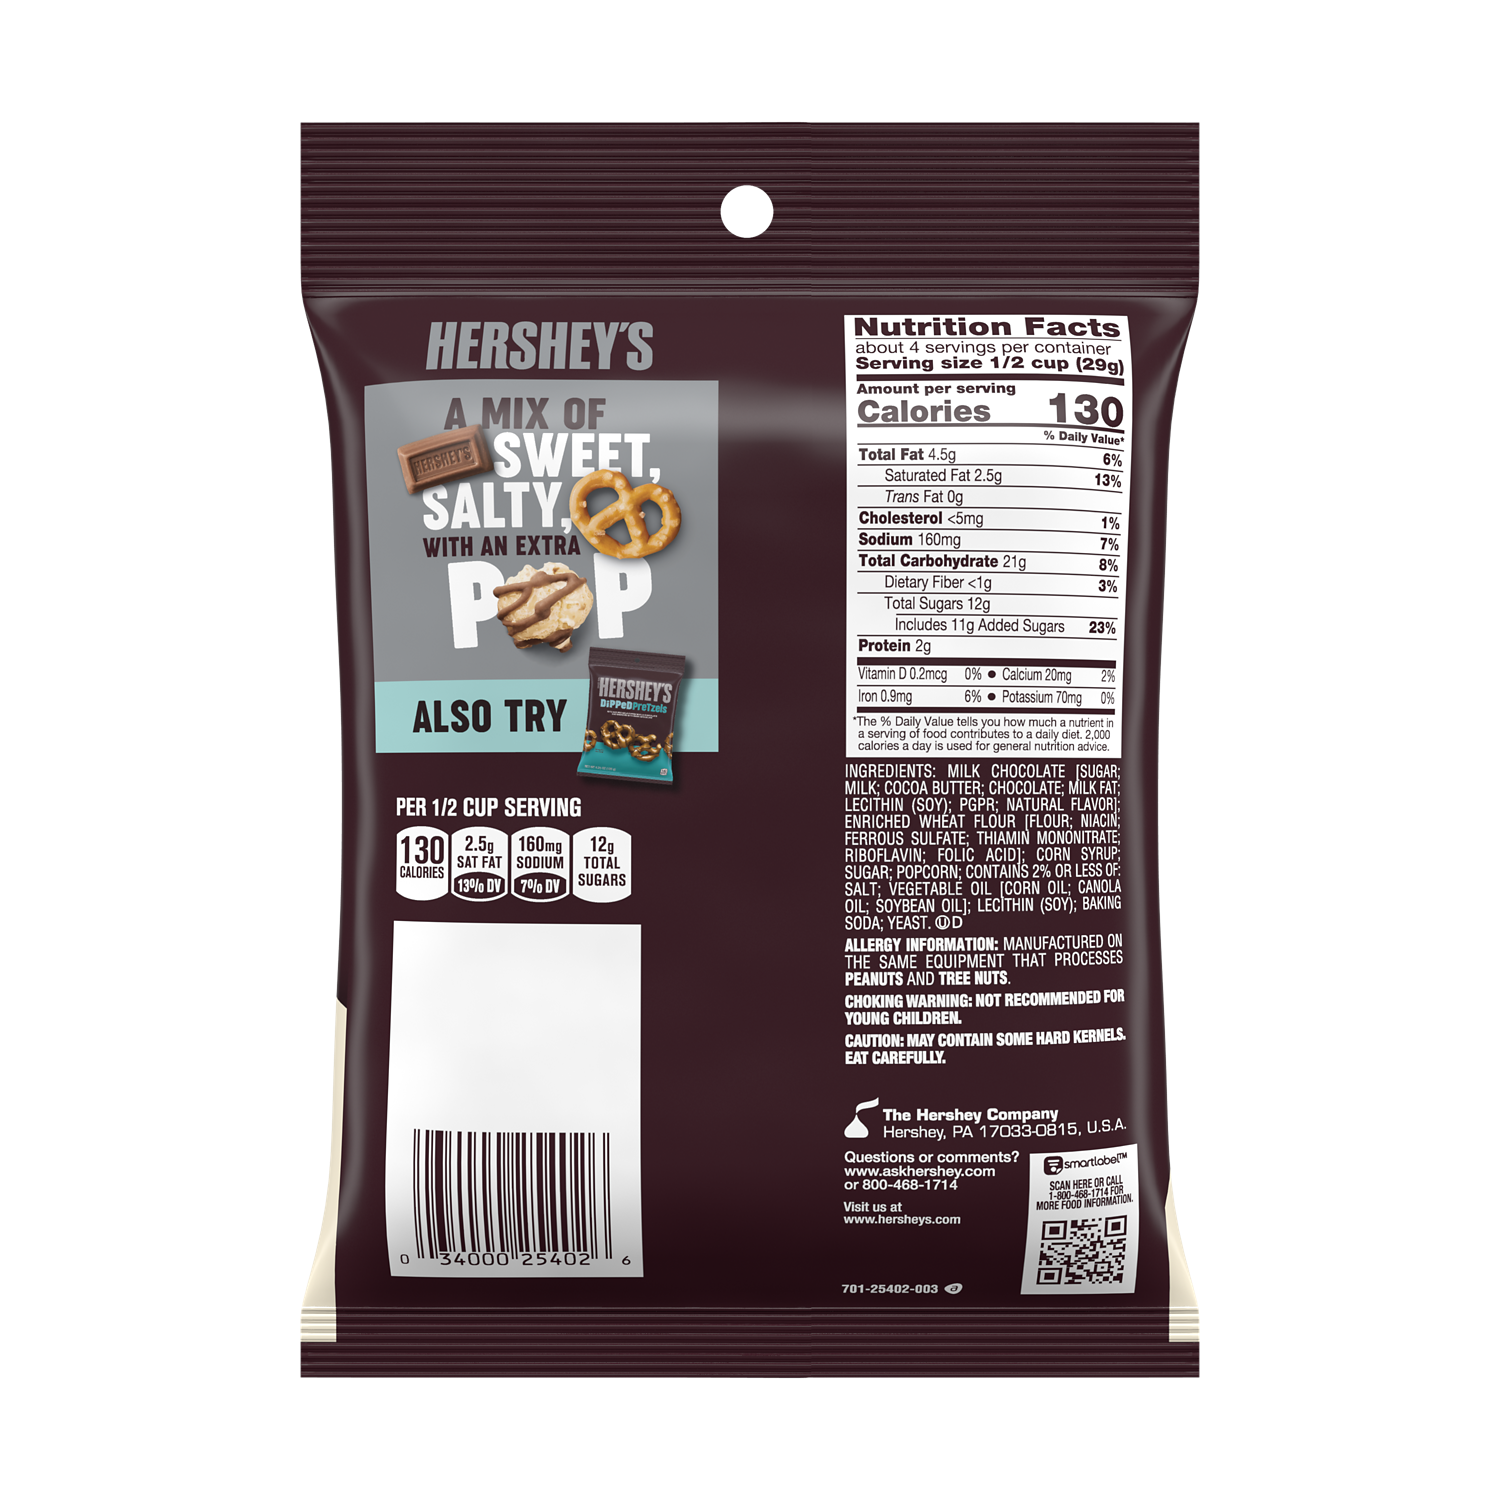 HERSHEY'S Popped Milk Chocolate Snack Mix, 4 oz bag - Back of Package